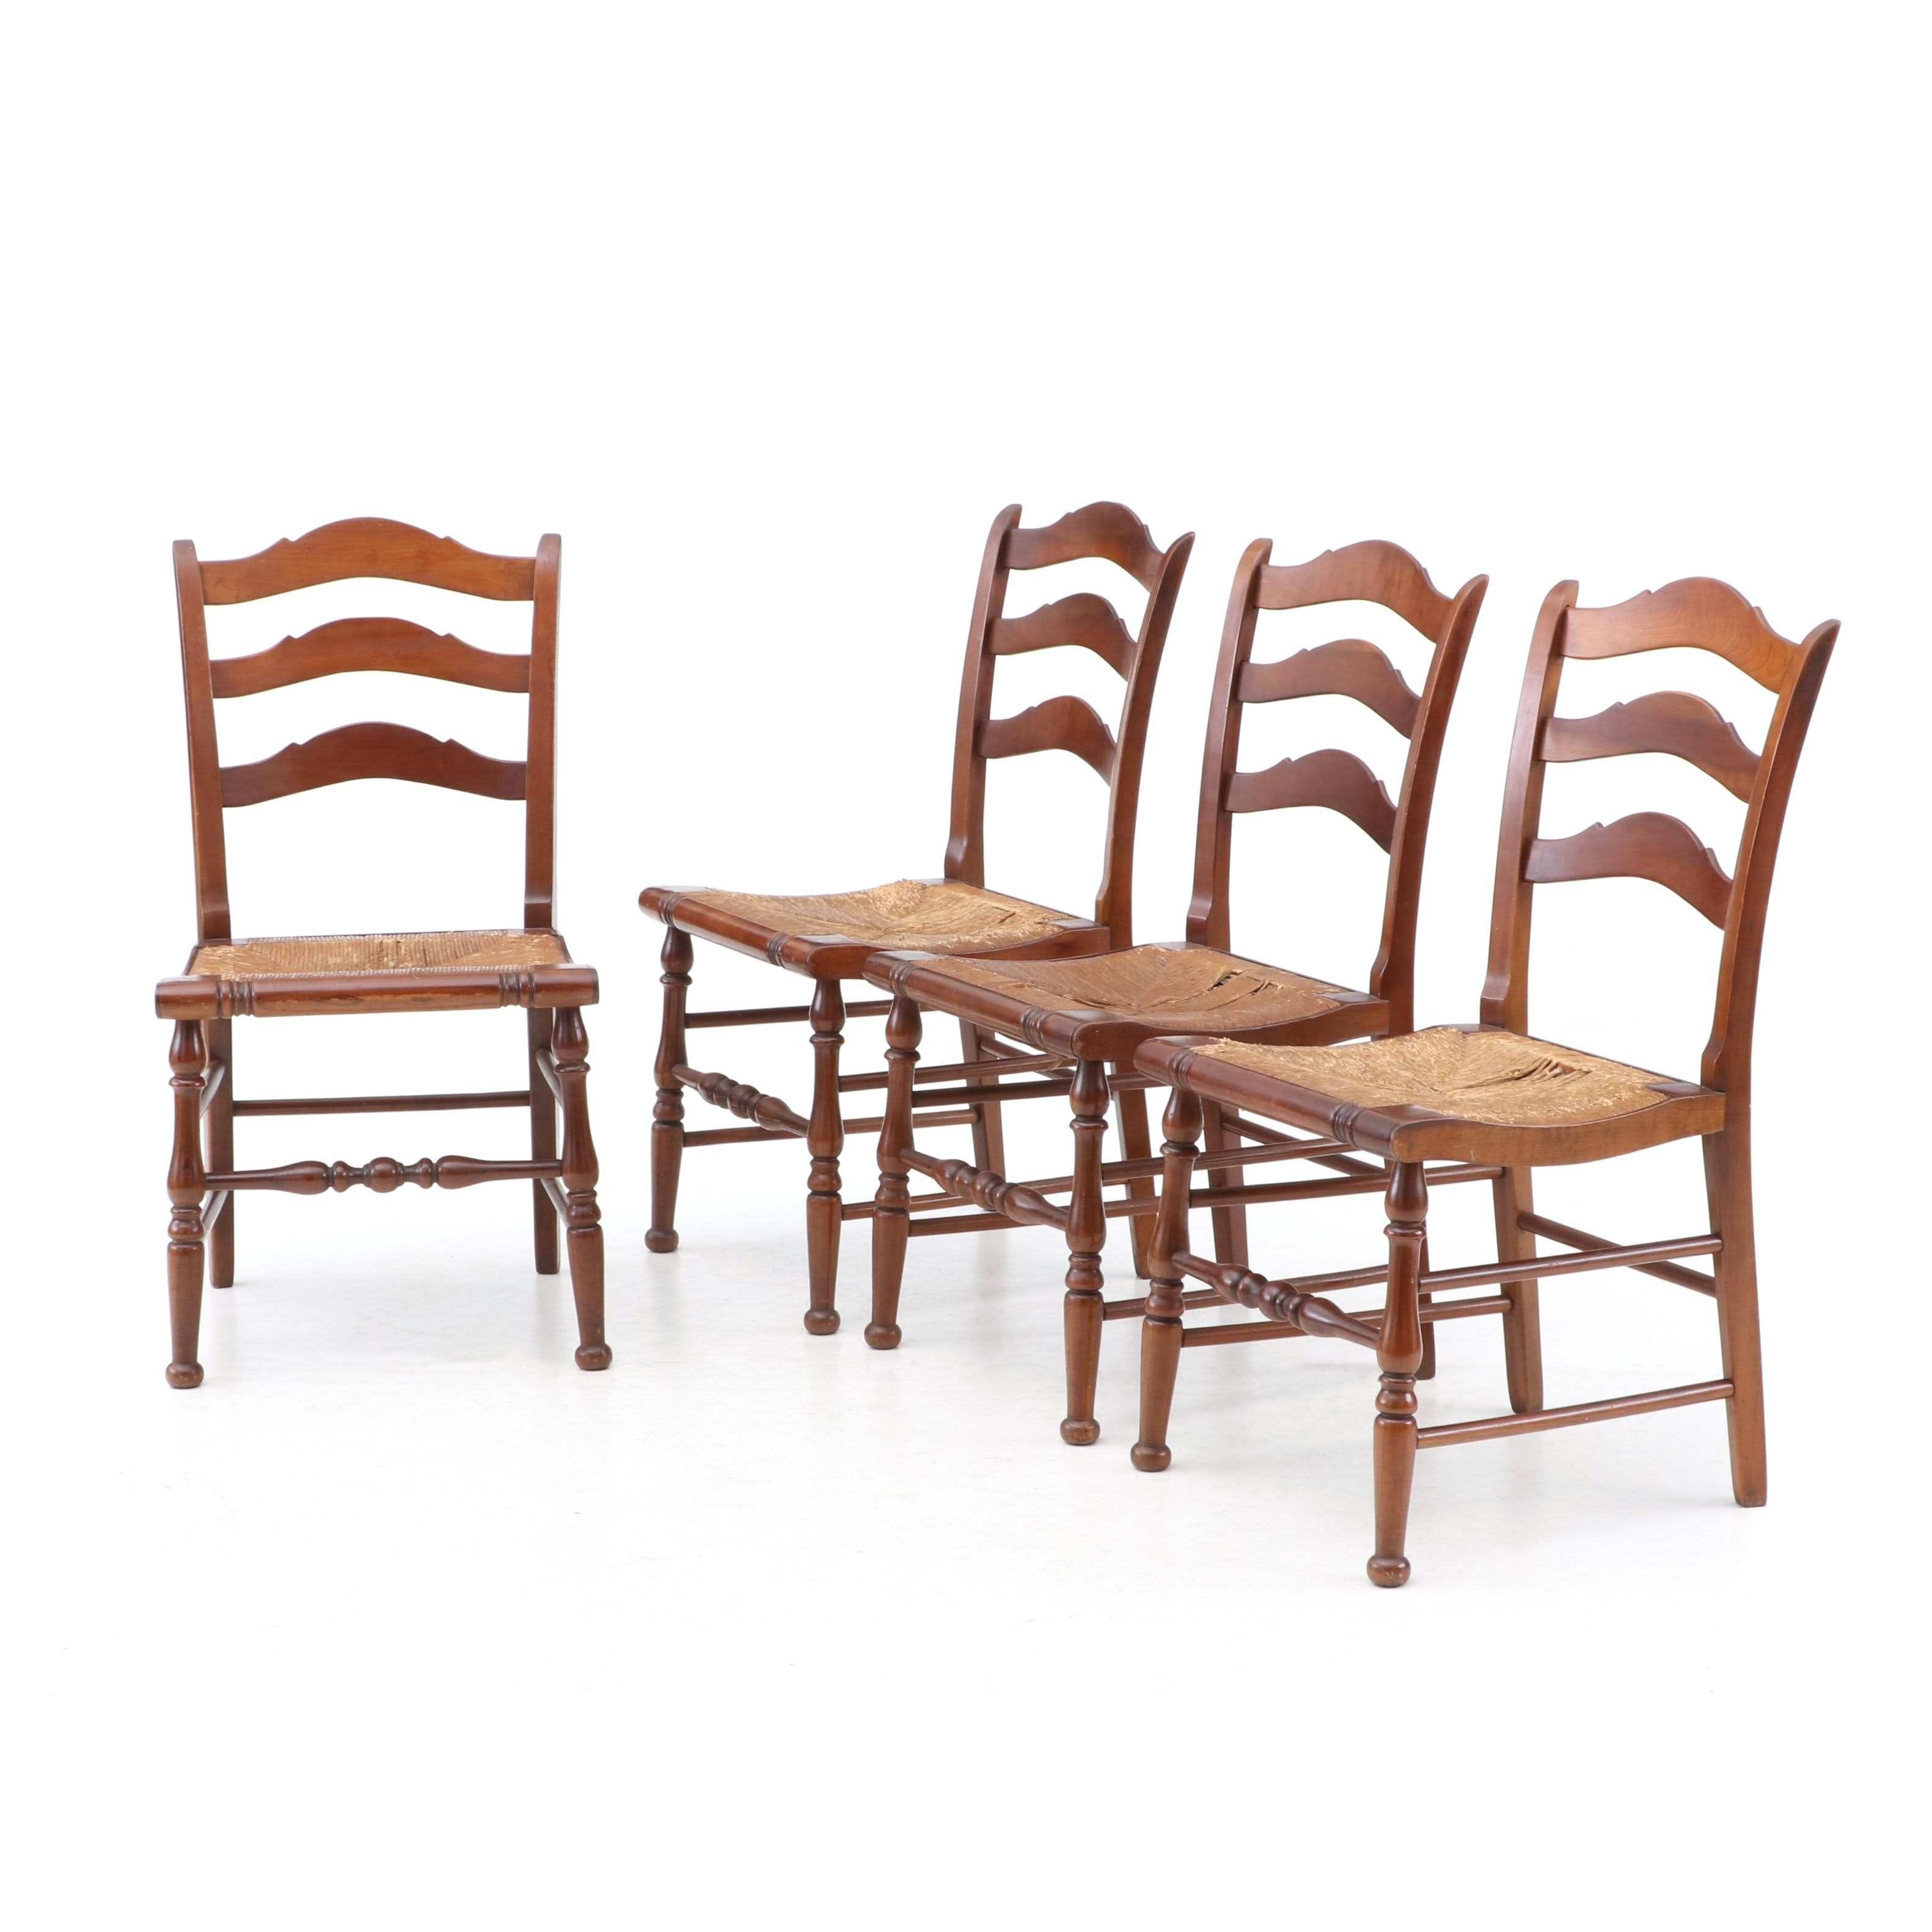 Federal Style Chair Chairs, Early 20th Century